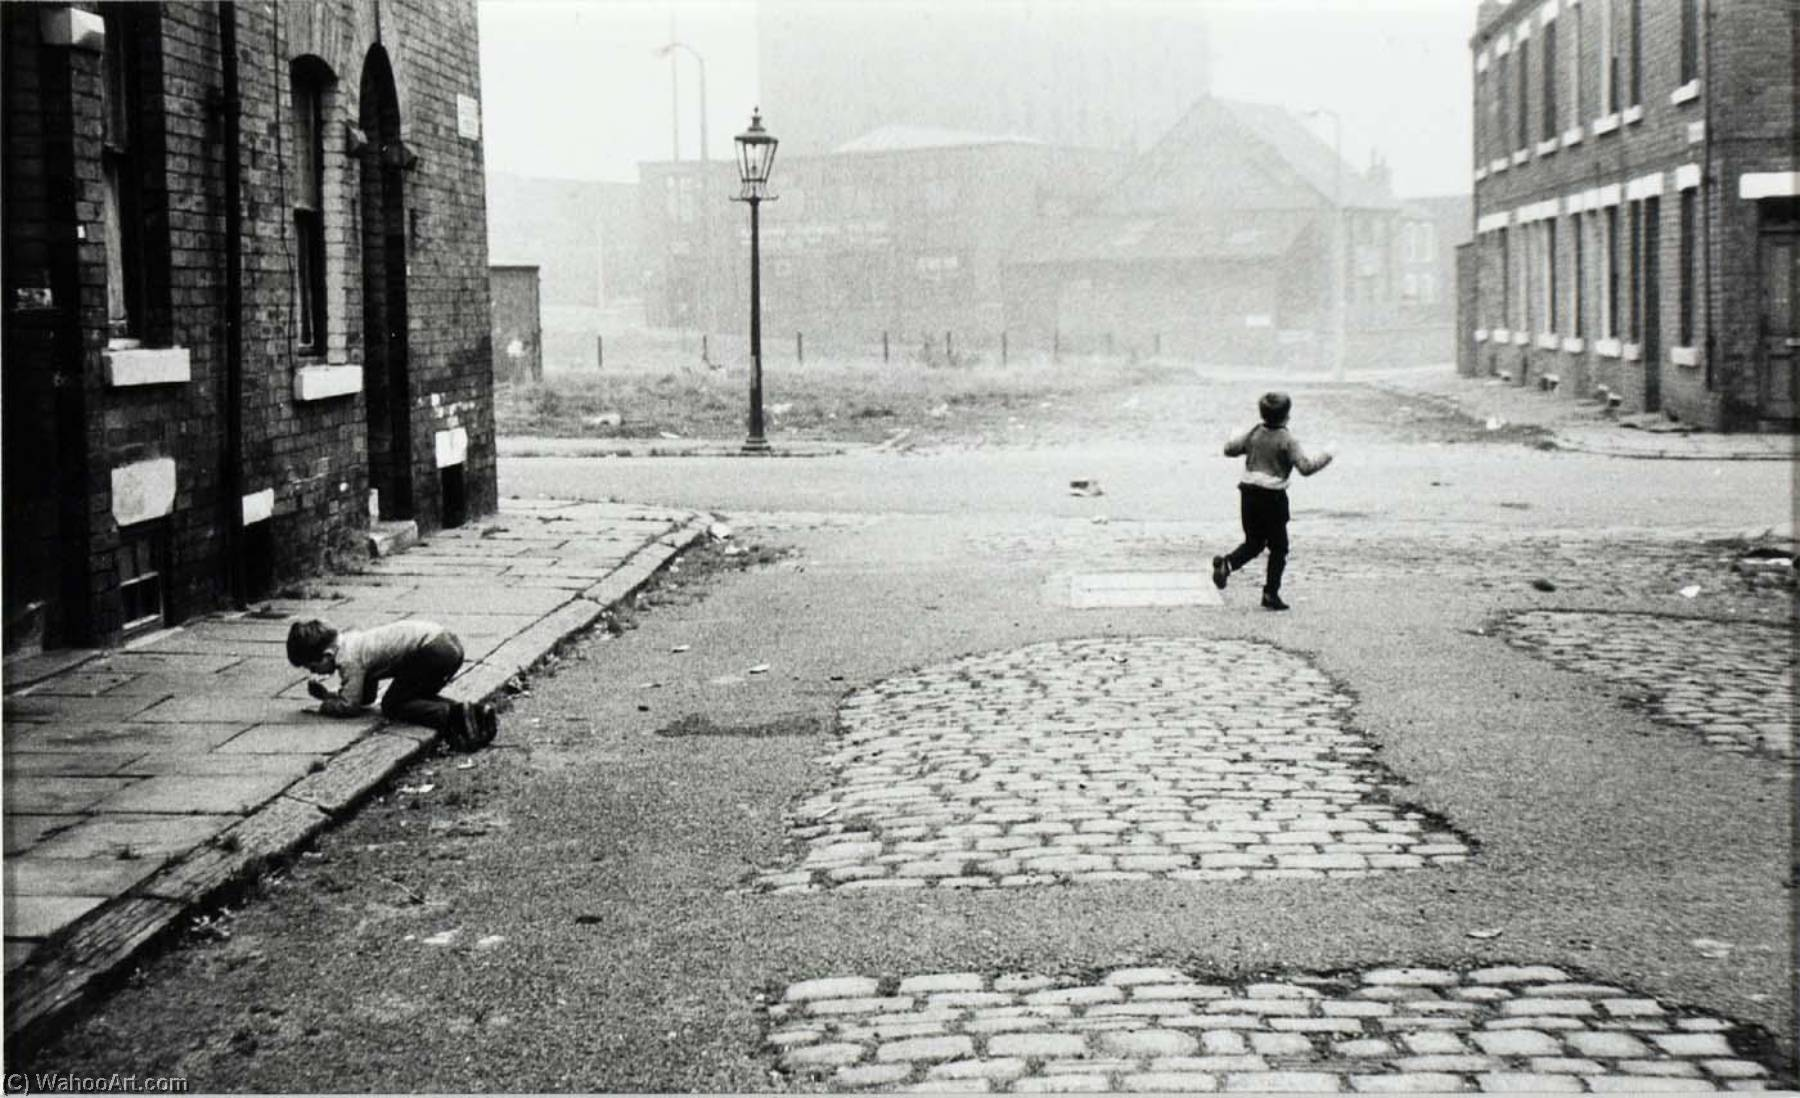 Leeds, England (two boys playing in street), 1971 by Jeffrey Blankfort | Famous Paintings Reproductions | WahooArt.com